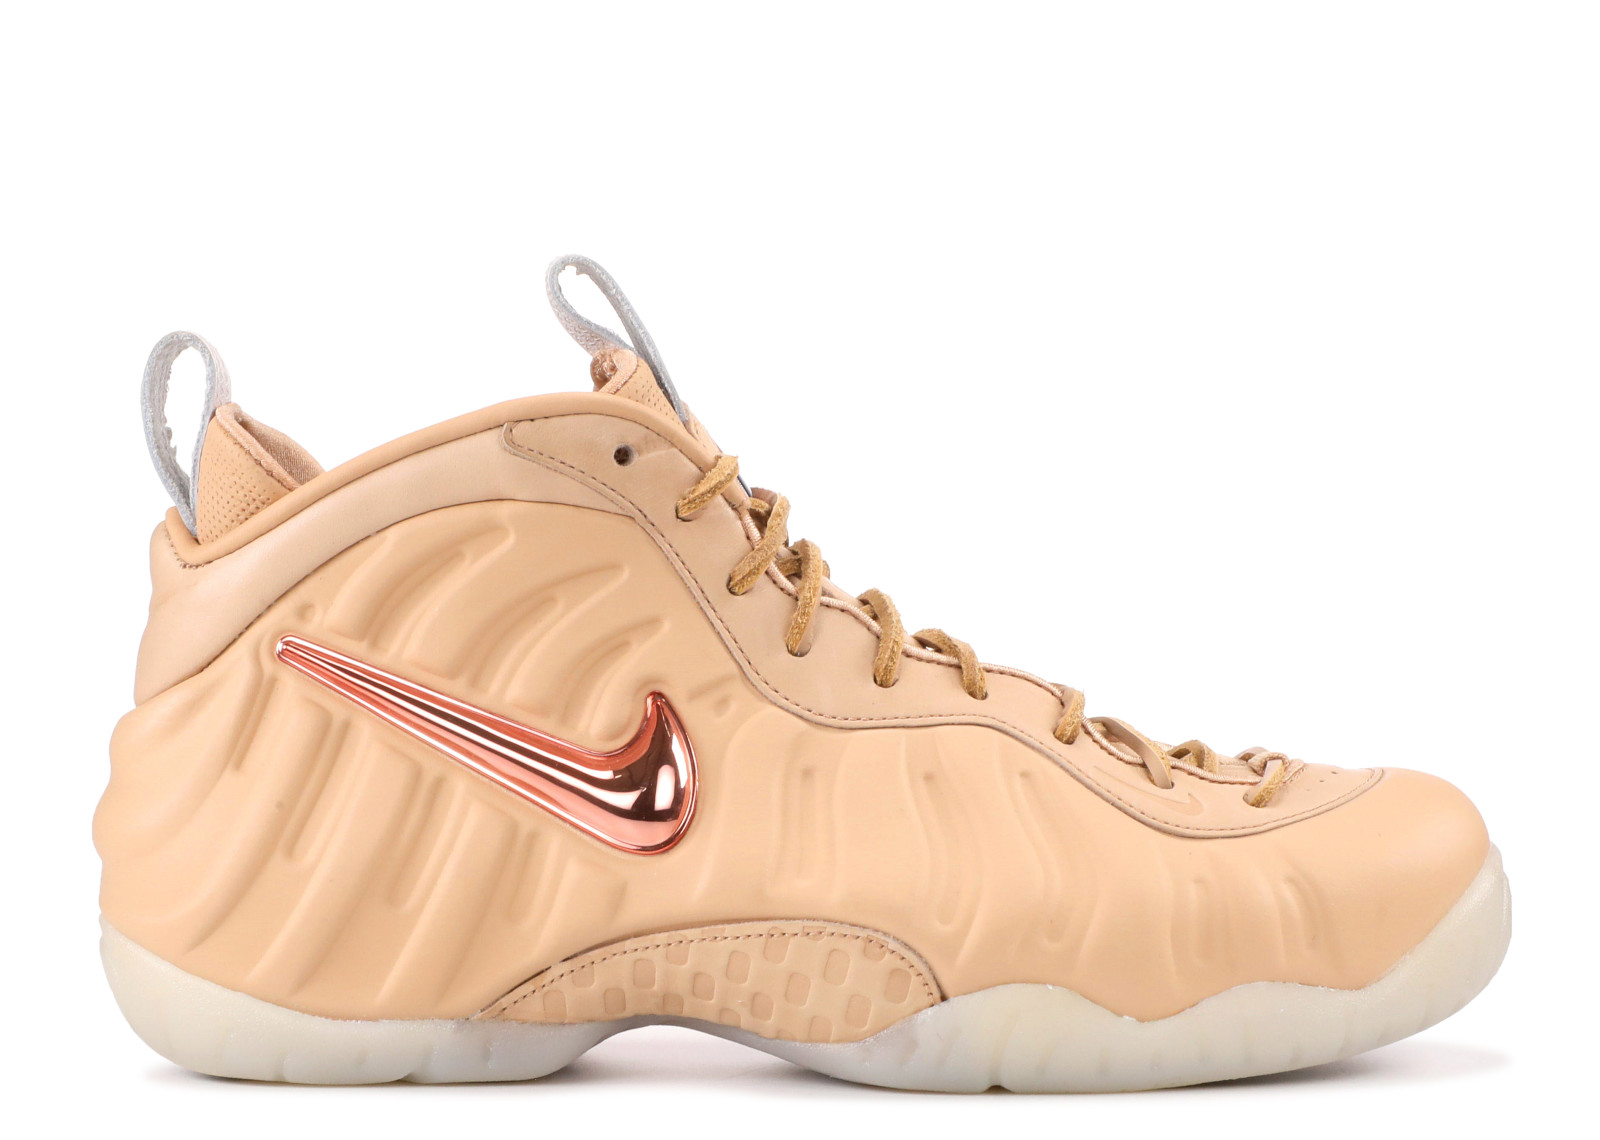 Air Foamposite Pro Premium Vachetta Tan